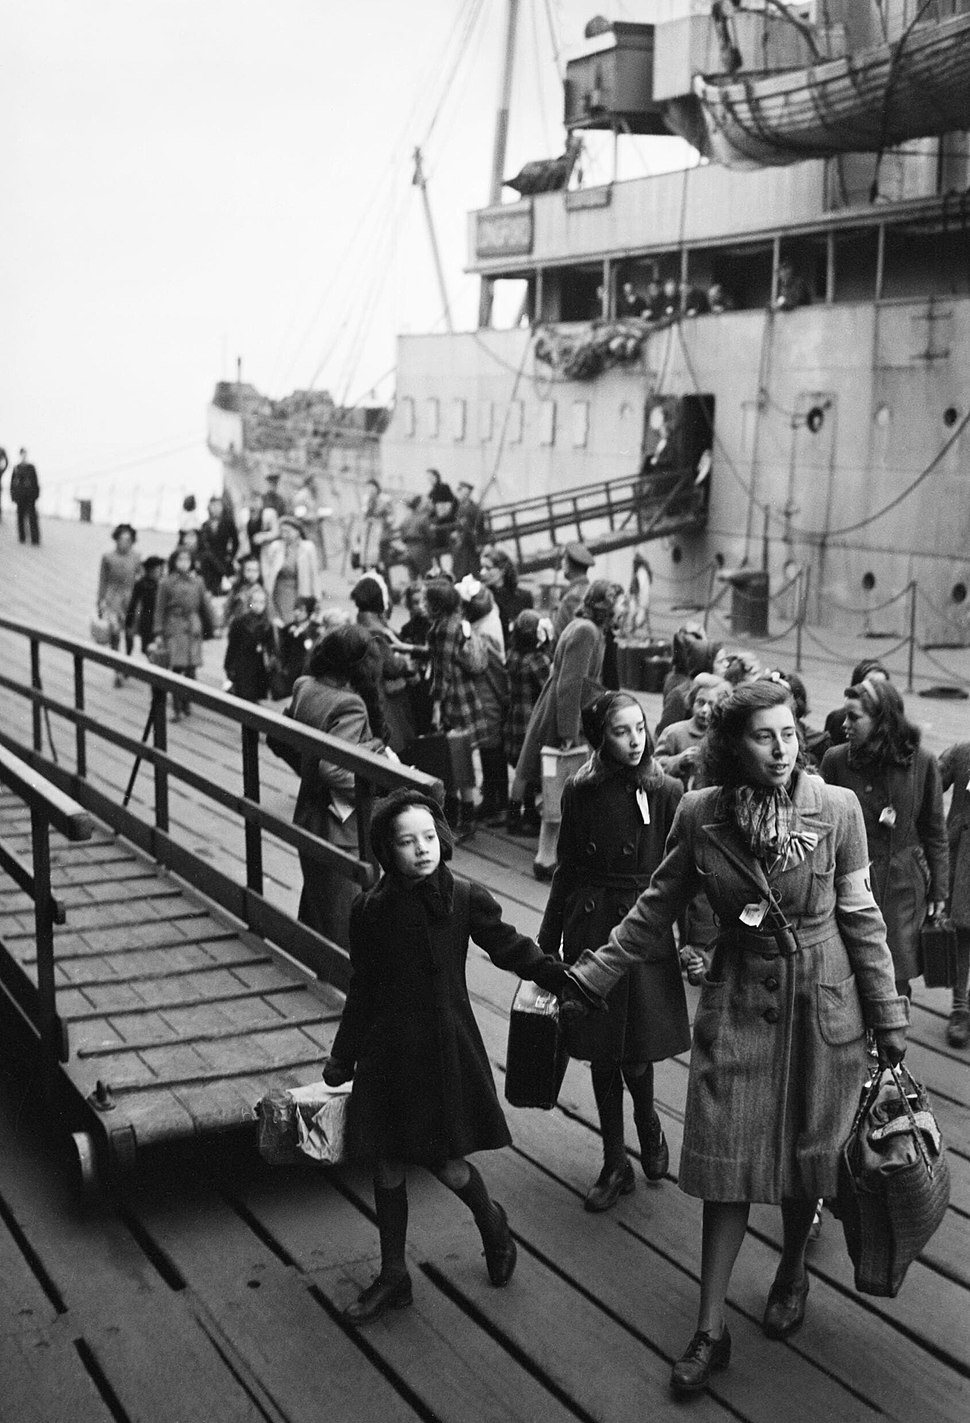 A Dutch school teacher leads a group of refugee children just disembarked from a ship at Tilbury Docks in Essex during 1945. D24064